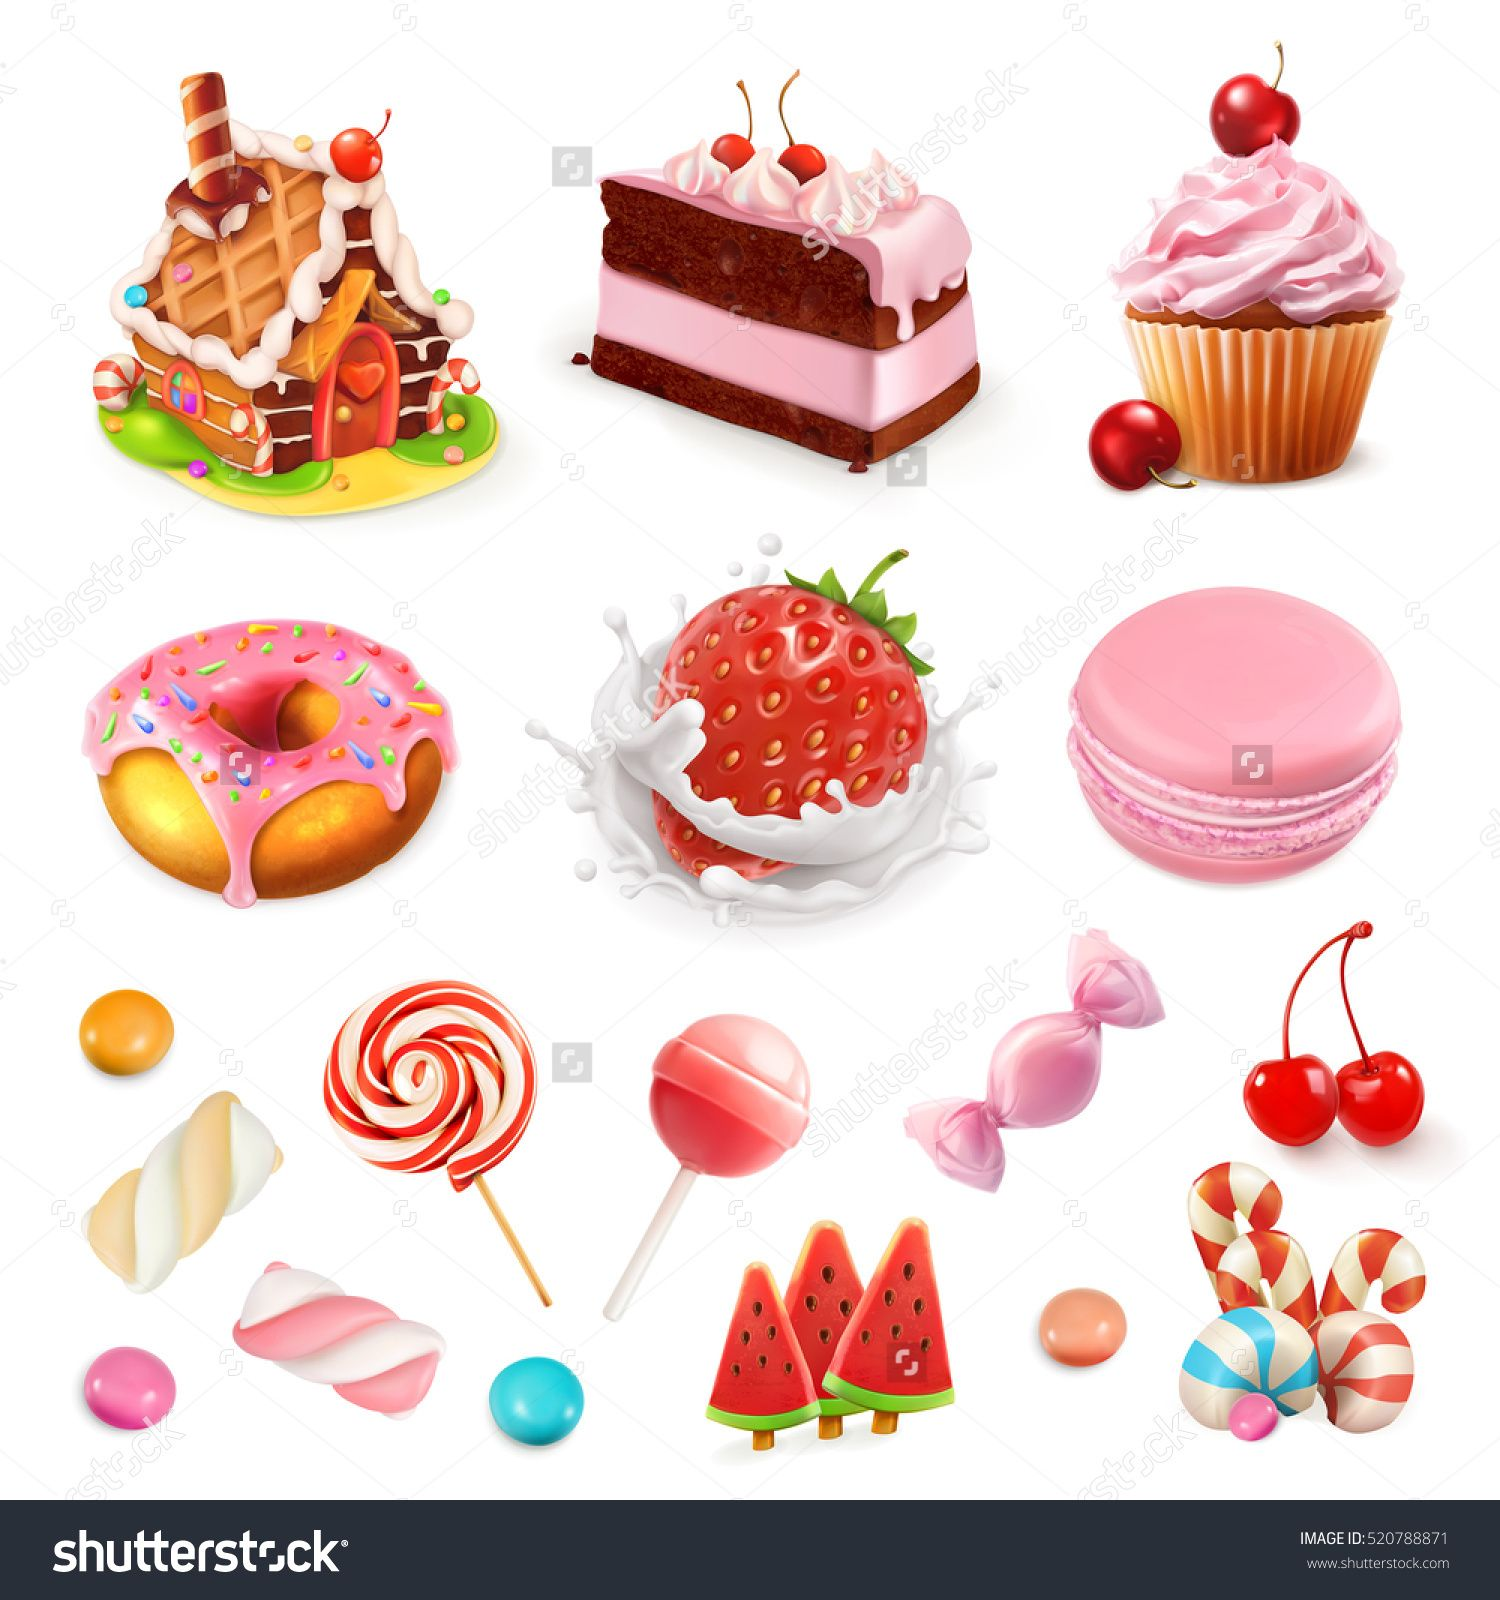 Lollipop clipart dessert. Confectionery and desserts strawberry